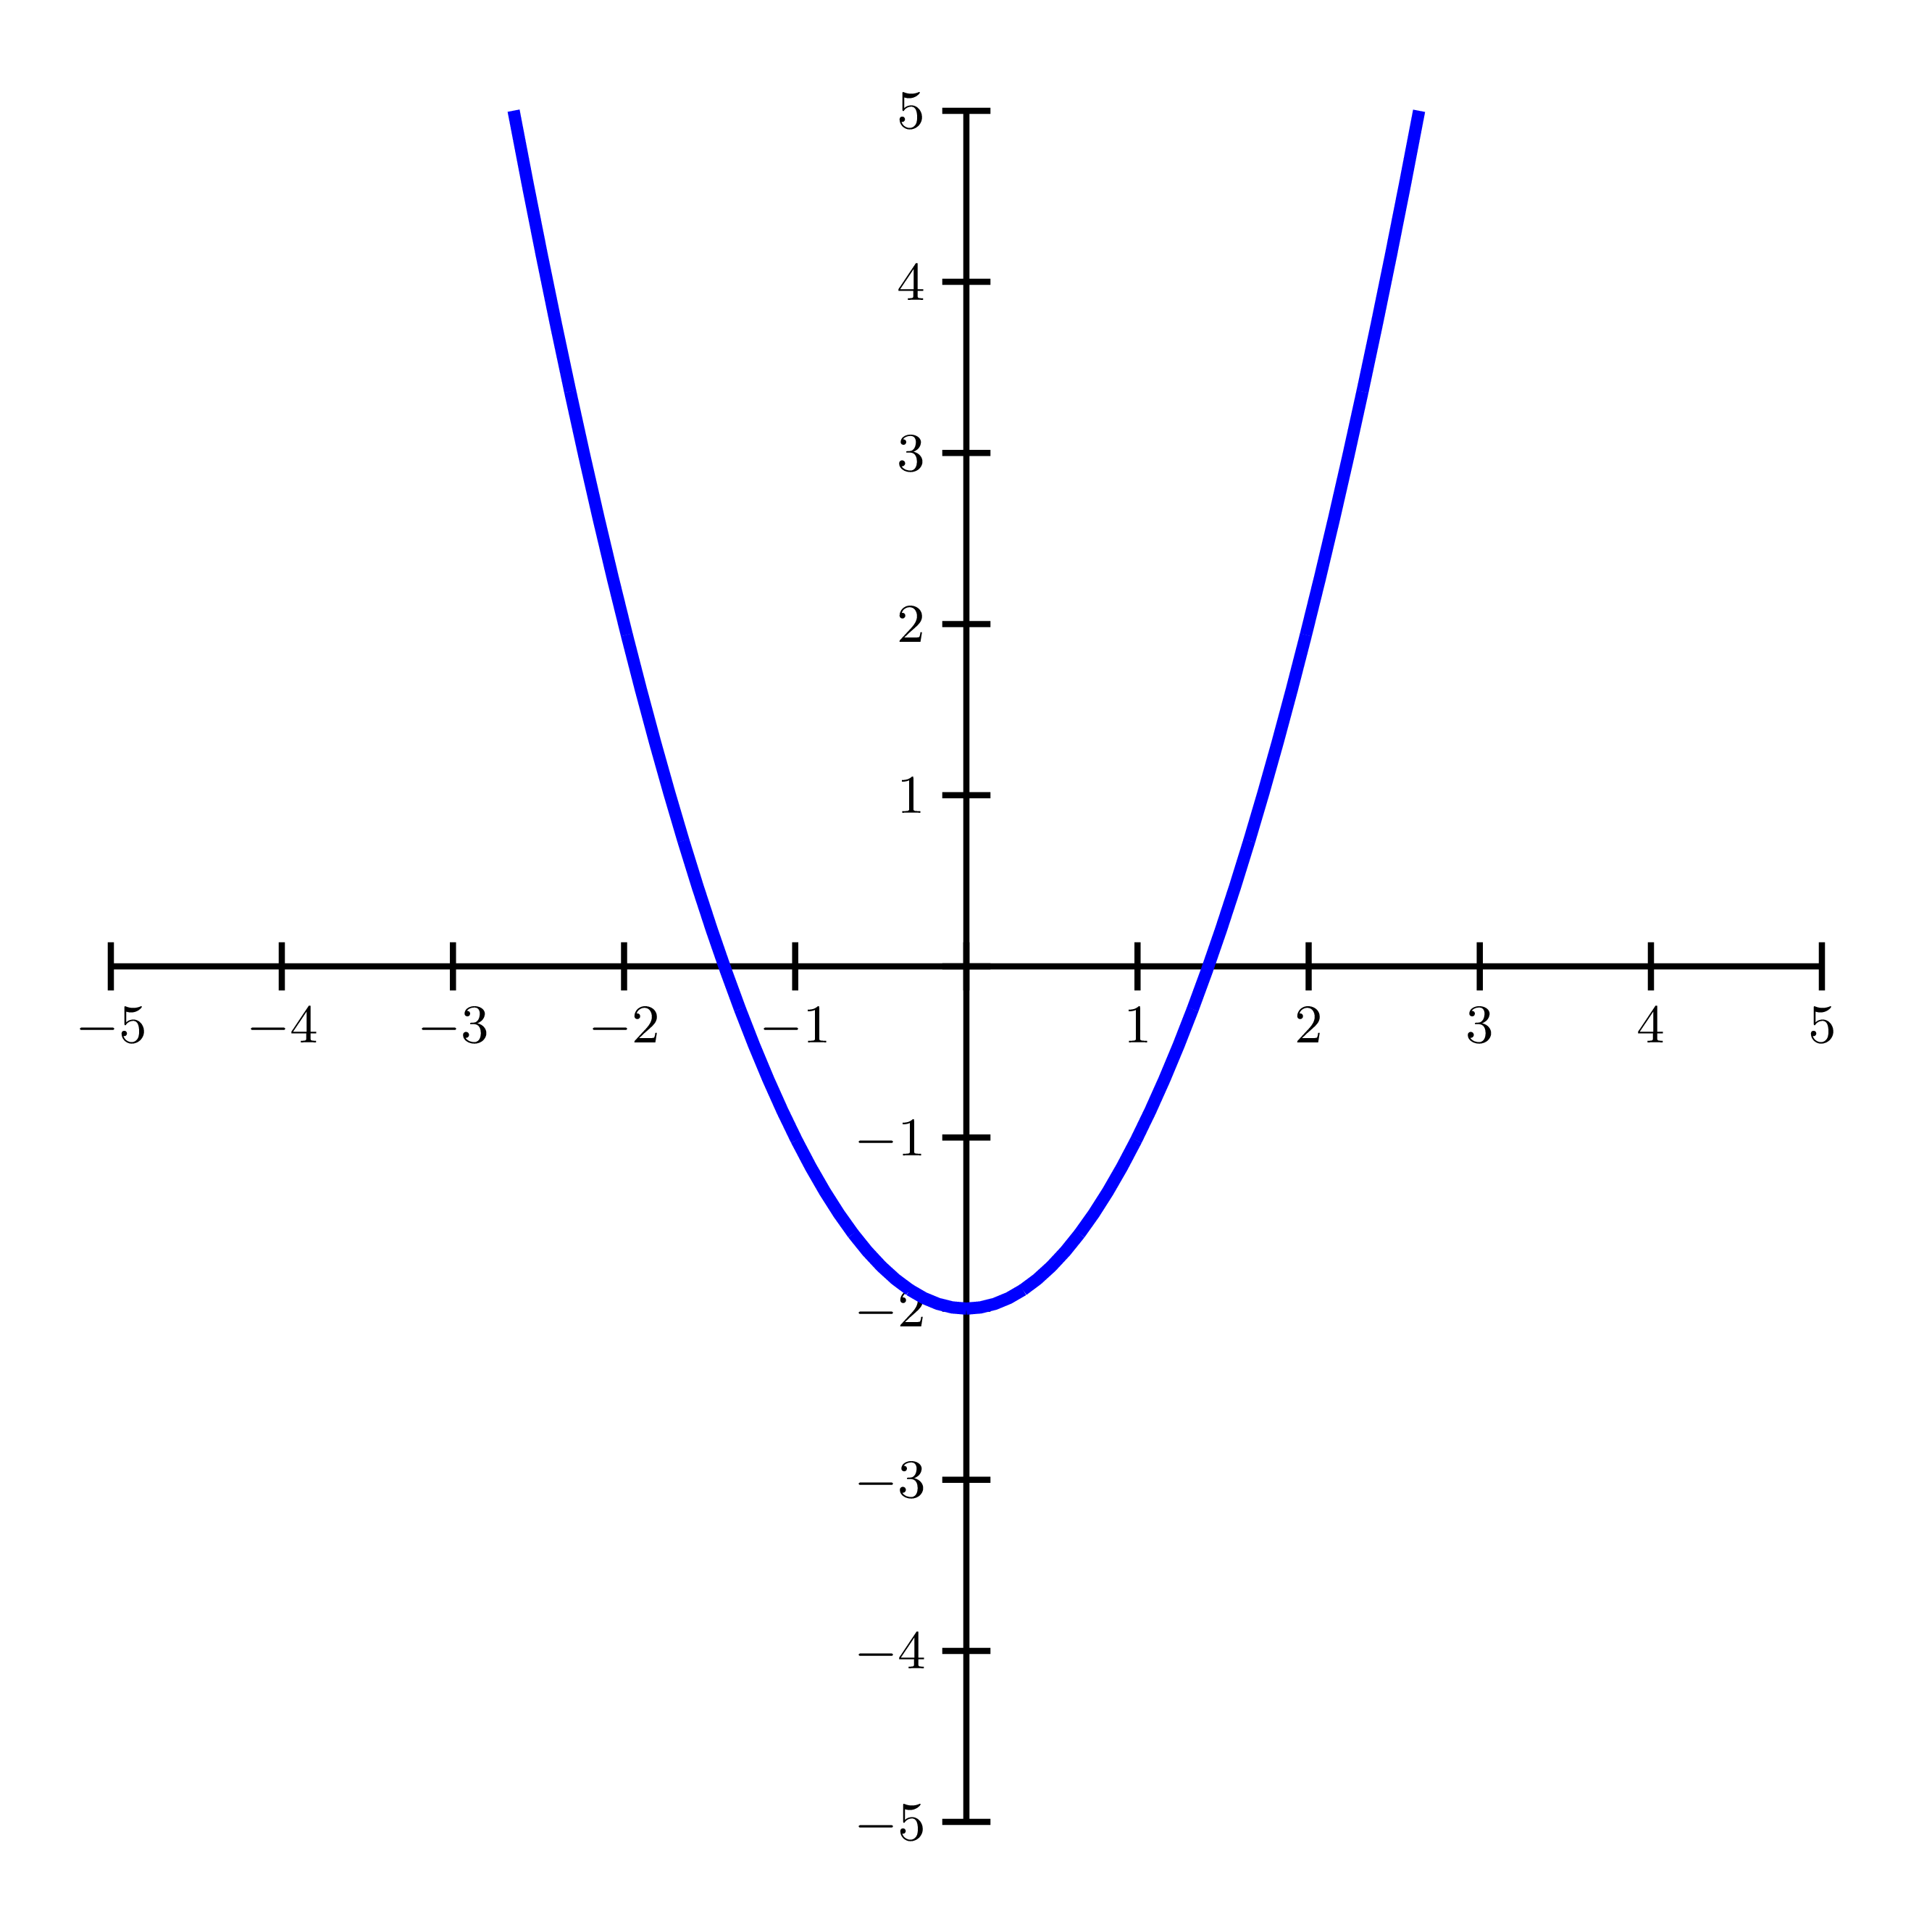 Parabola with vertical axis